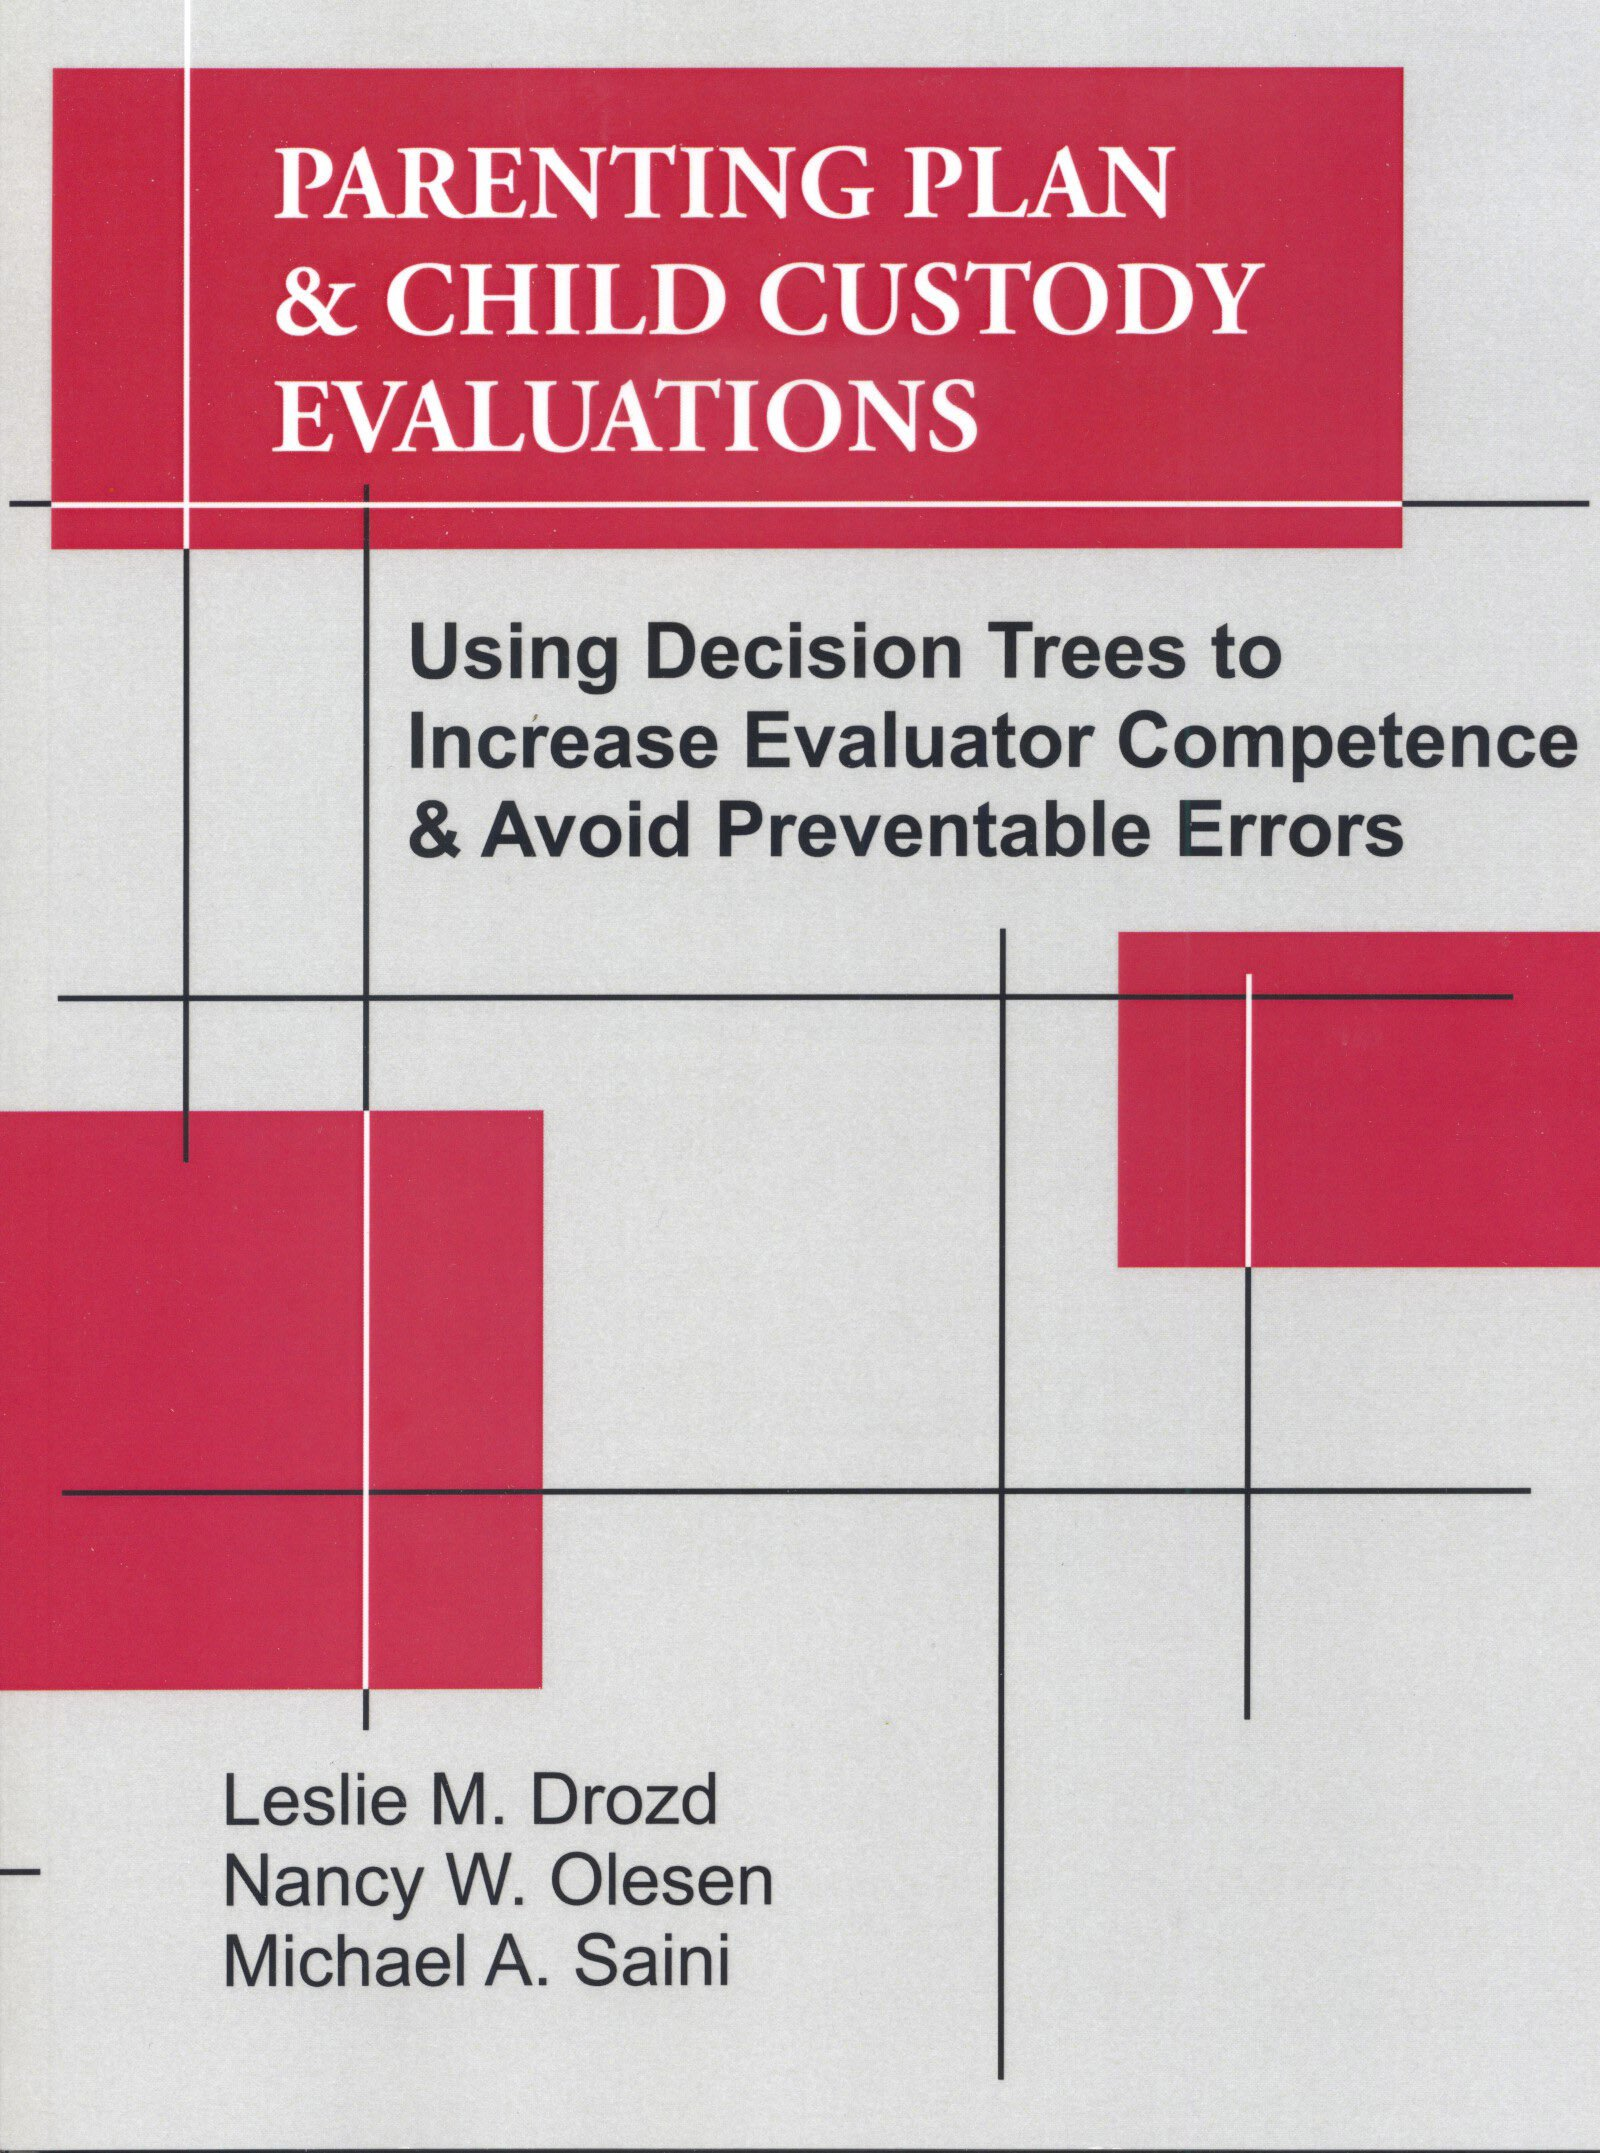 Read Online Parenting Plan & Child Custody Evaluations: Using Decision Trees to Increase Evaluator Competence & Avoid Preventable Errors ebook